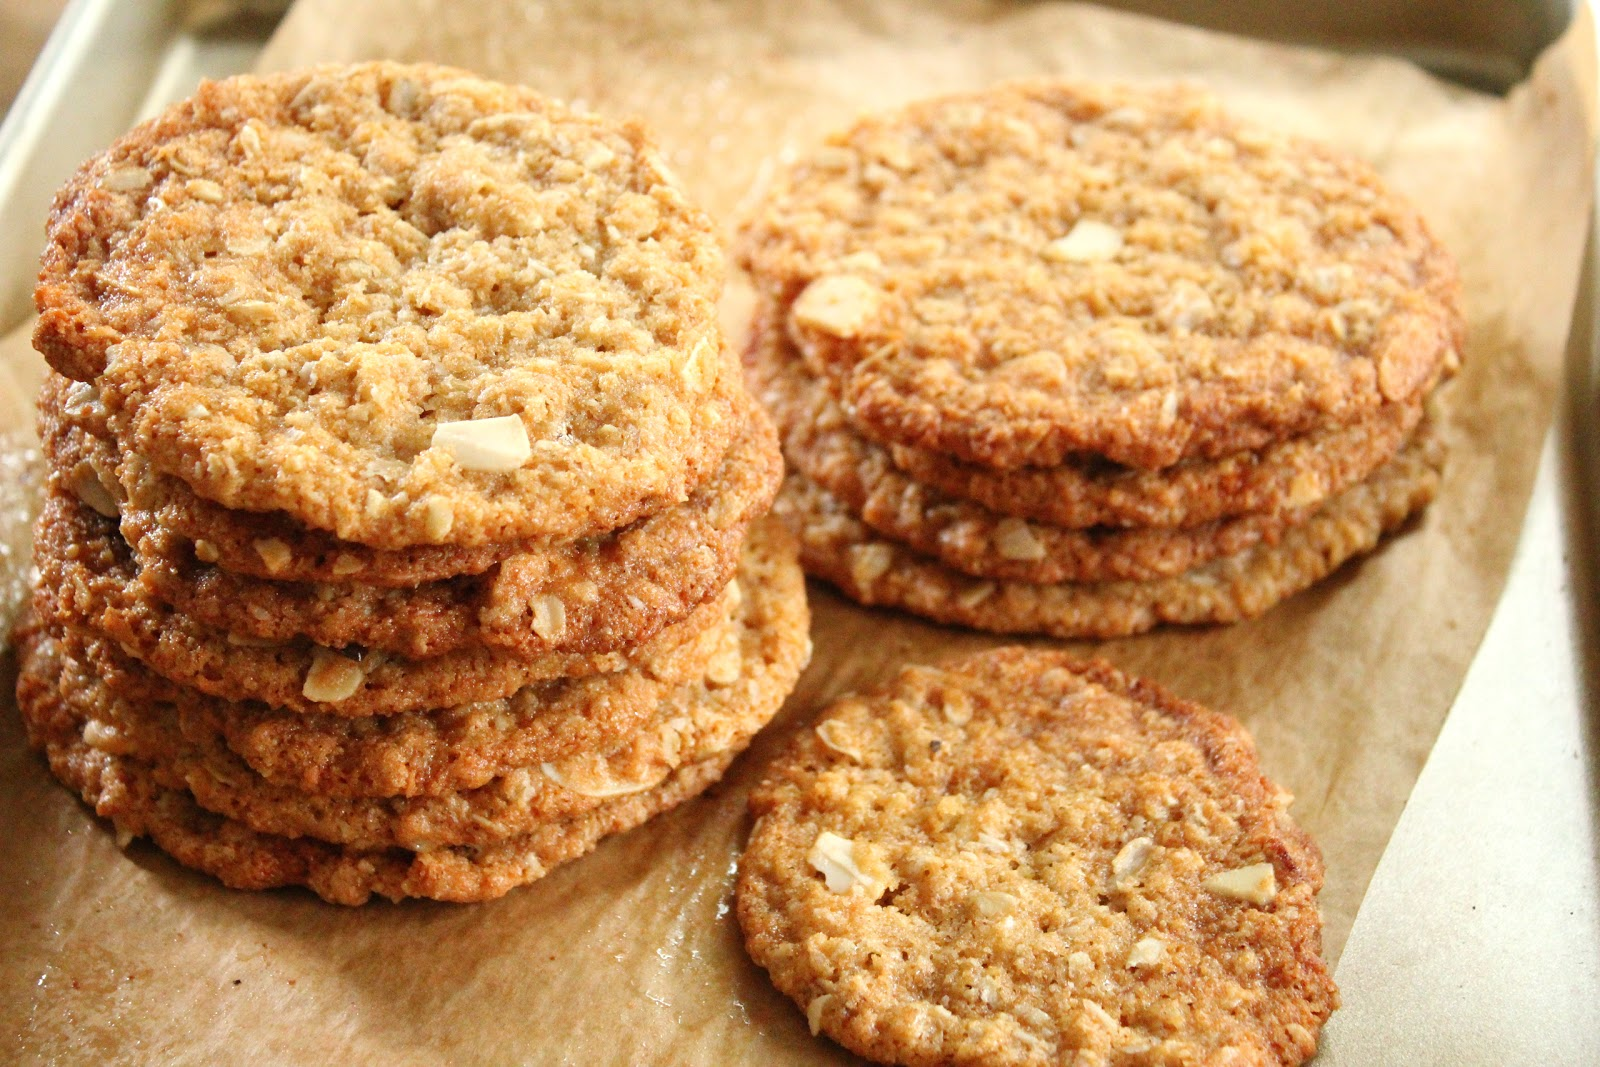 Oatmeal, coconut and almond cookies - Home cooking recipes